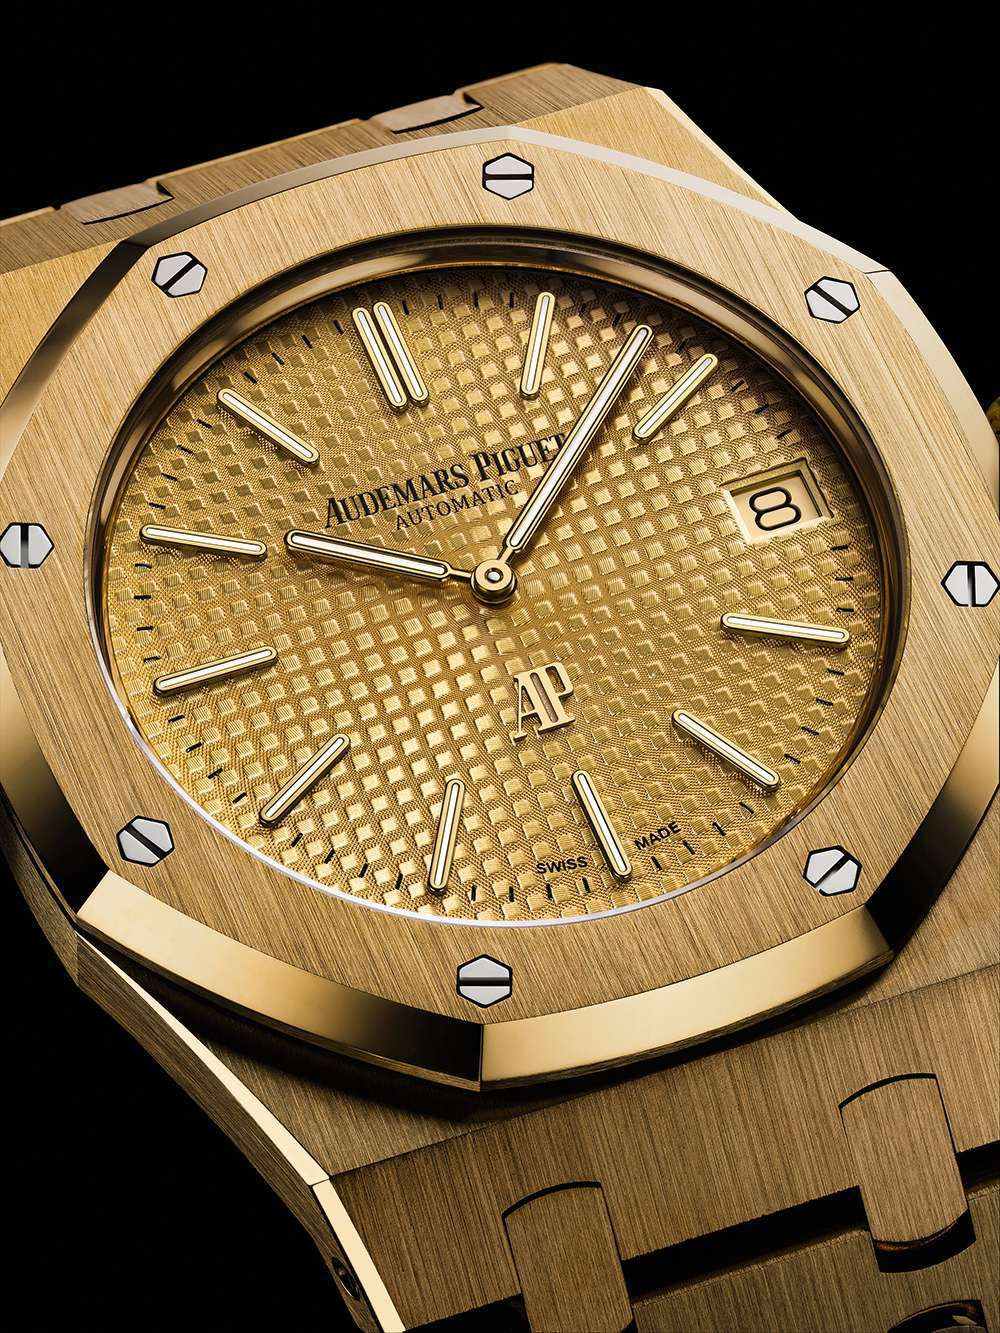 Audemars Piguet Royal Oak Extra-Thin, gold dial